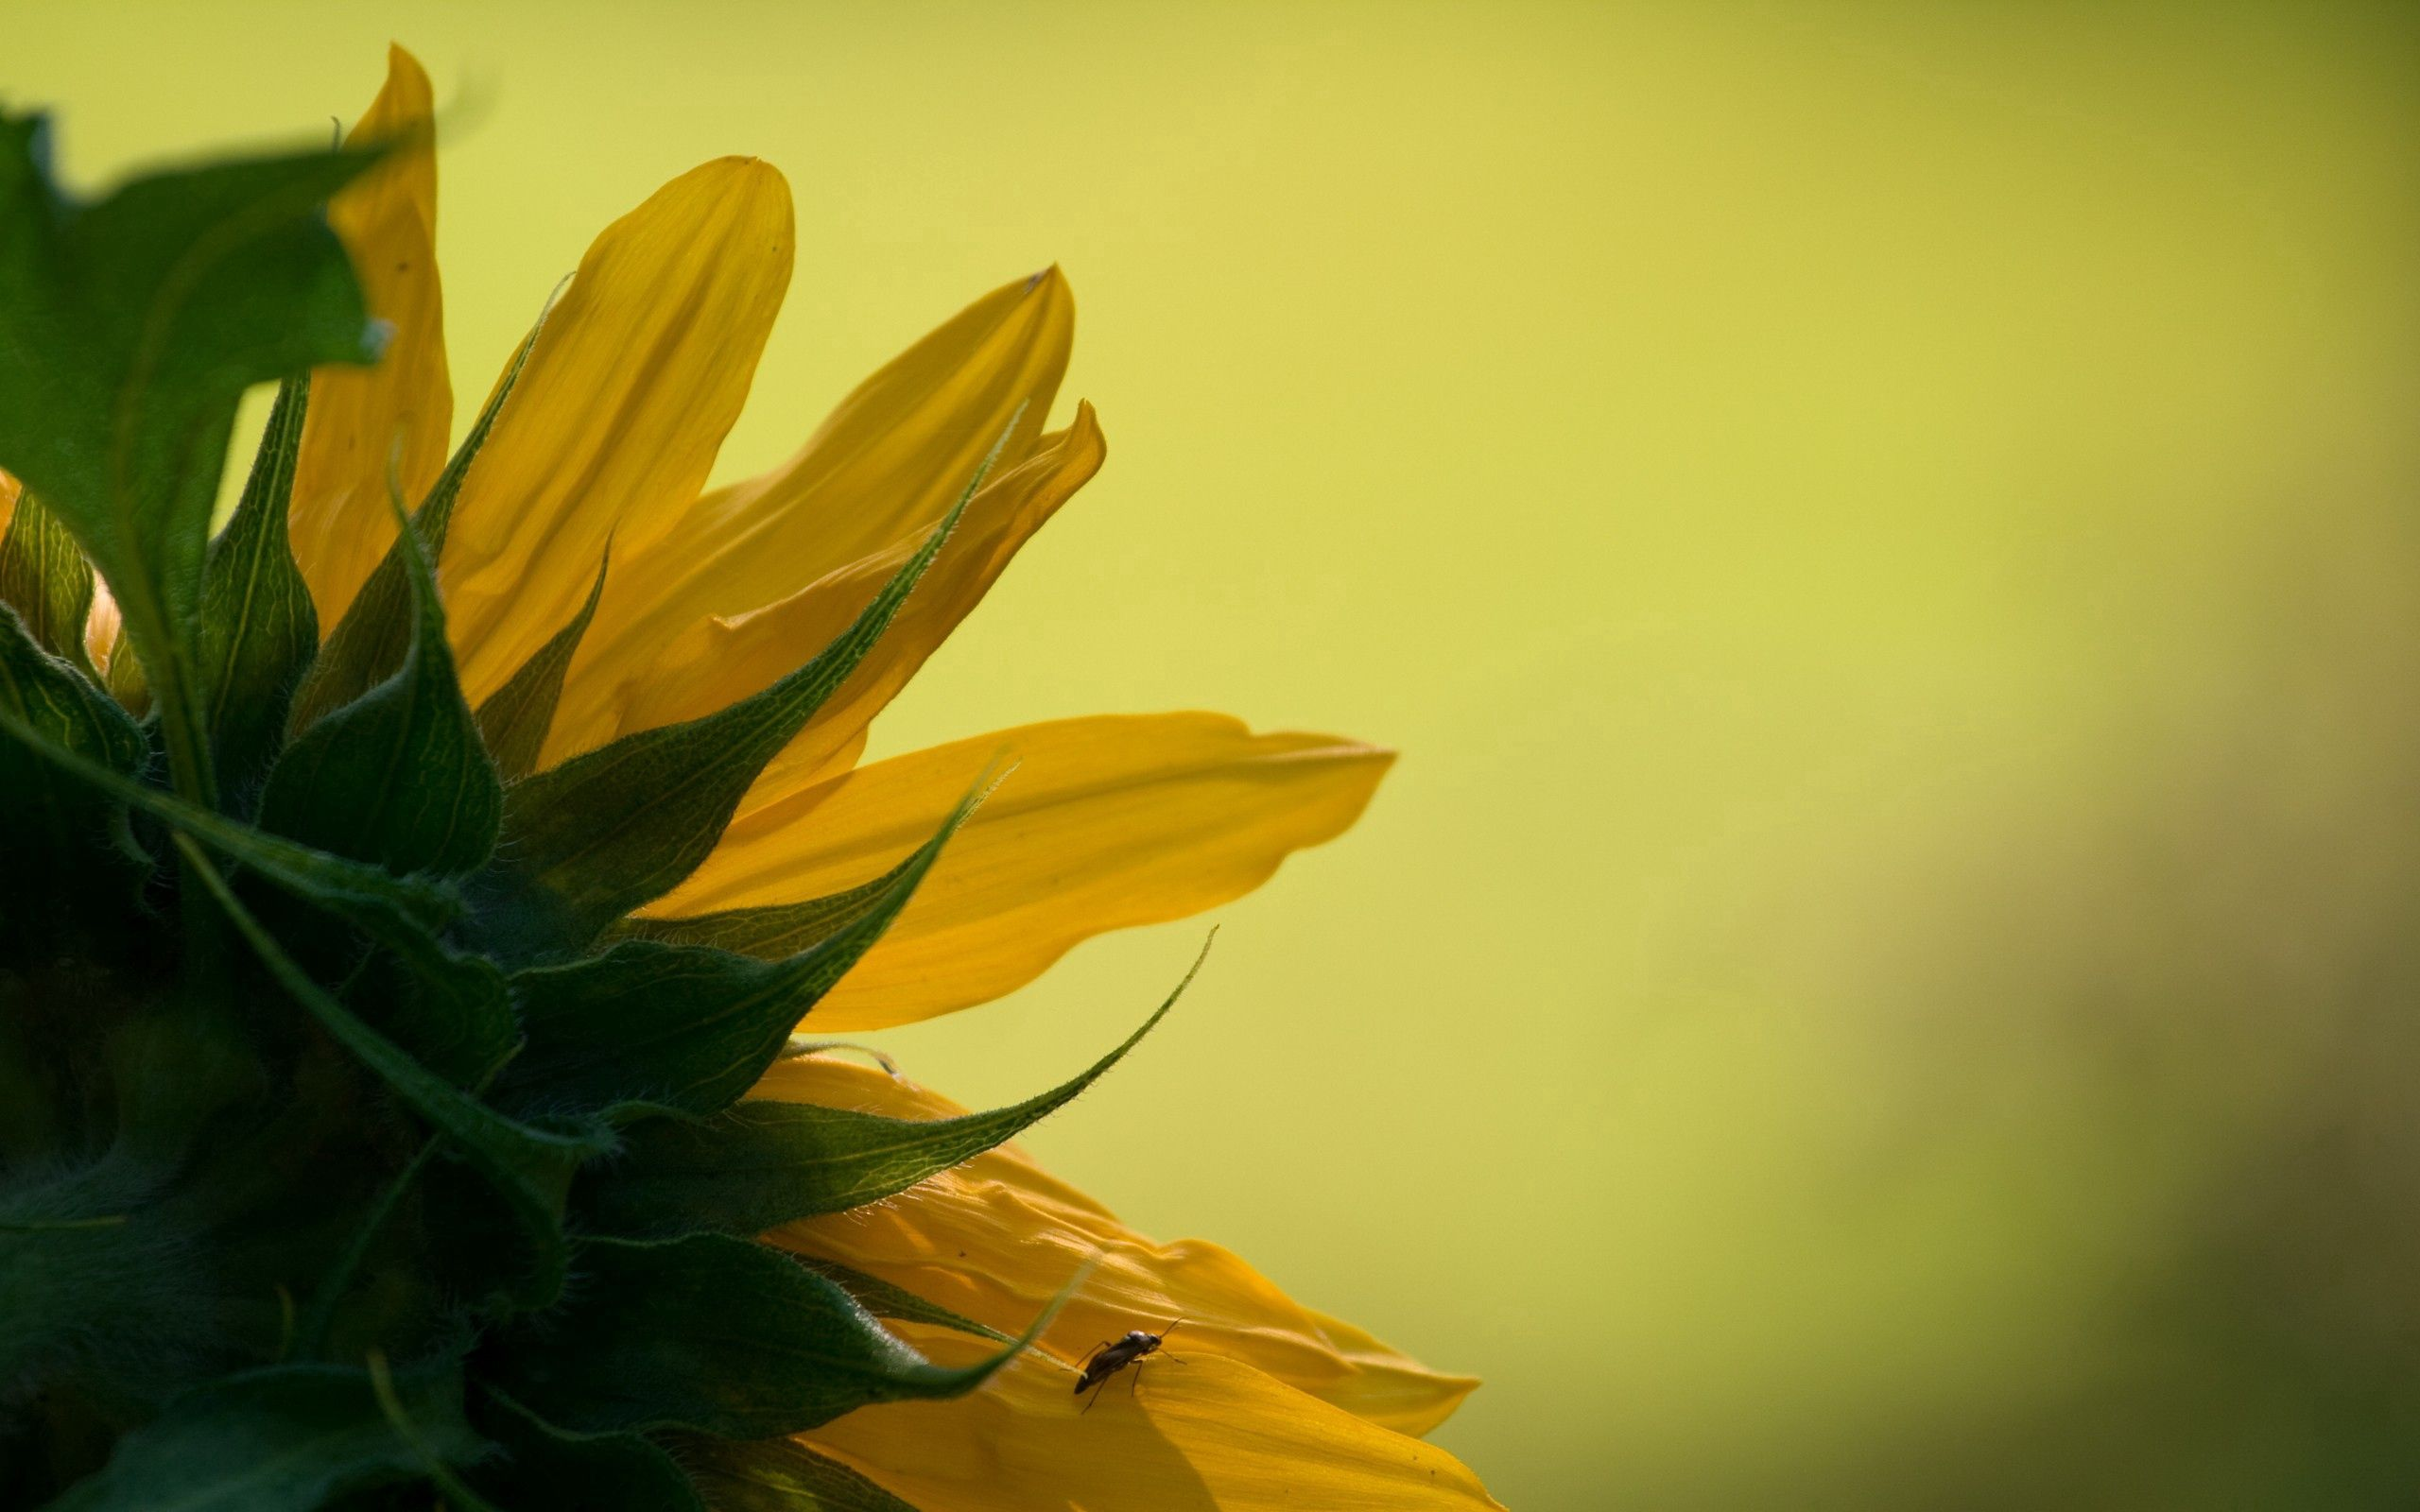 110550 download wallpaper Macro, Sunflower, Petals, Leaves, Background screensavers and pictures for free